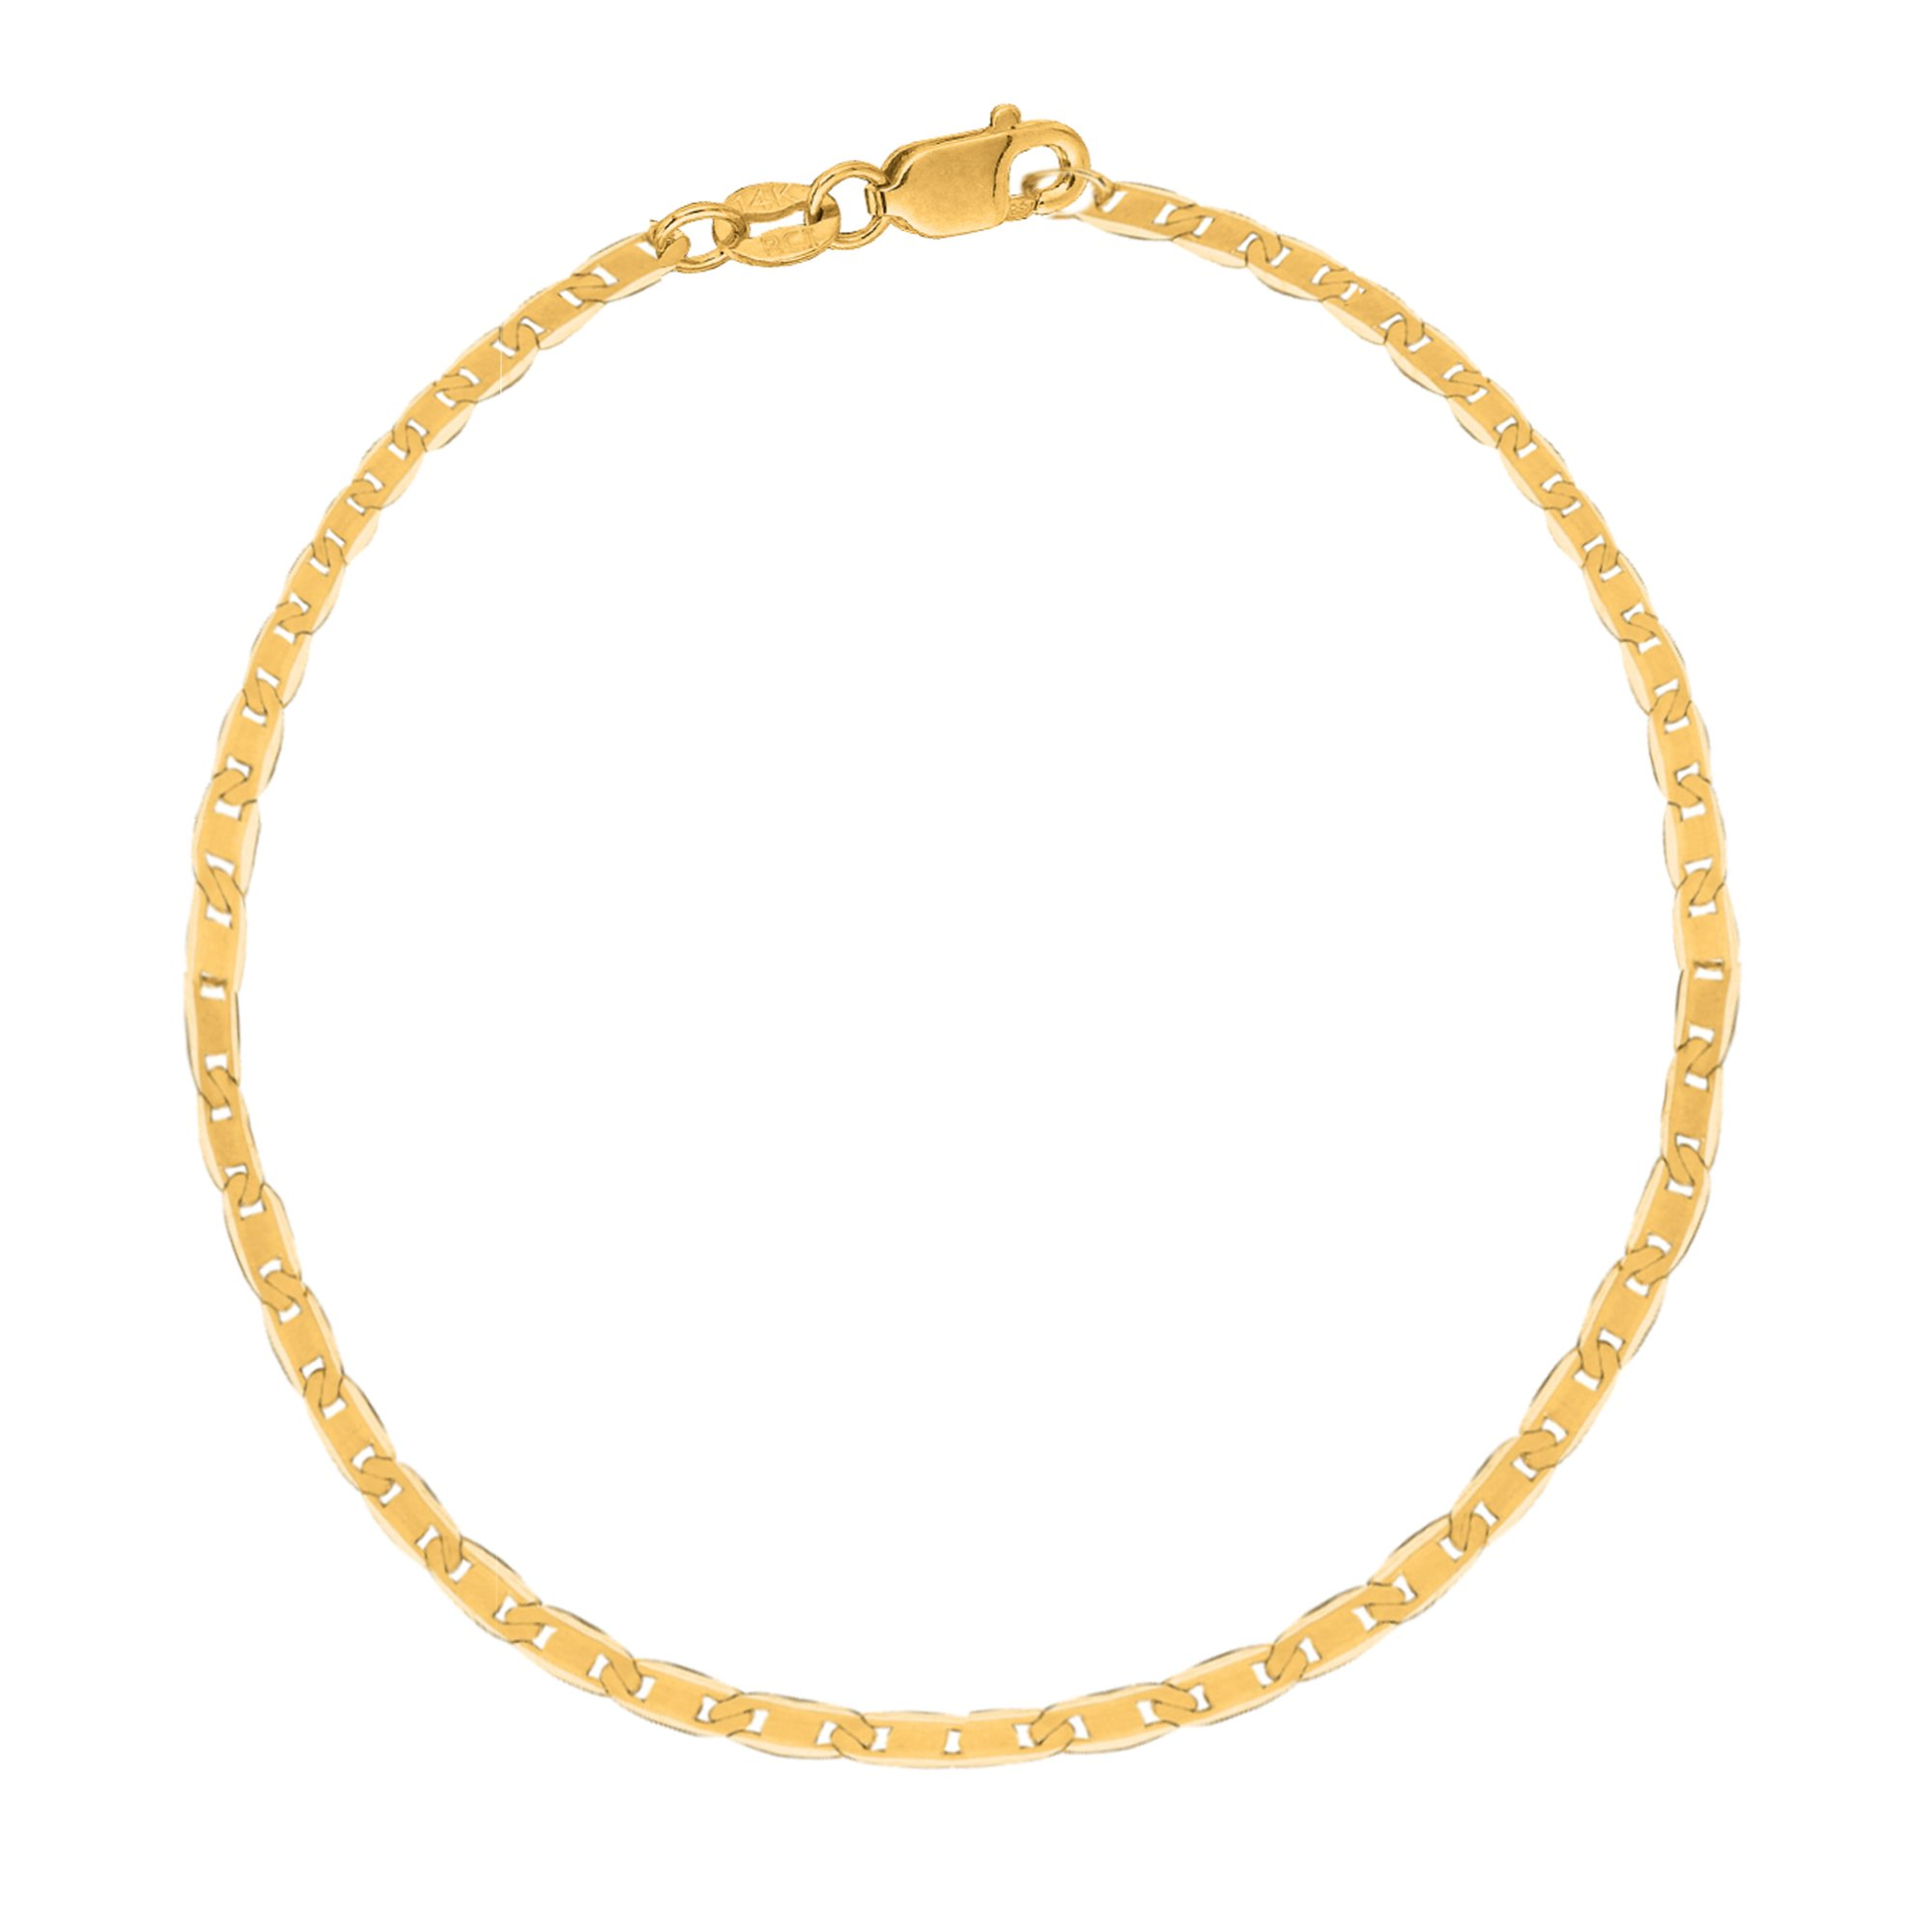 10k Solid Yellow Gold Mariner Link Chain Ankle Anklet 10 Inches